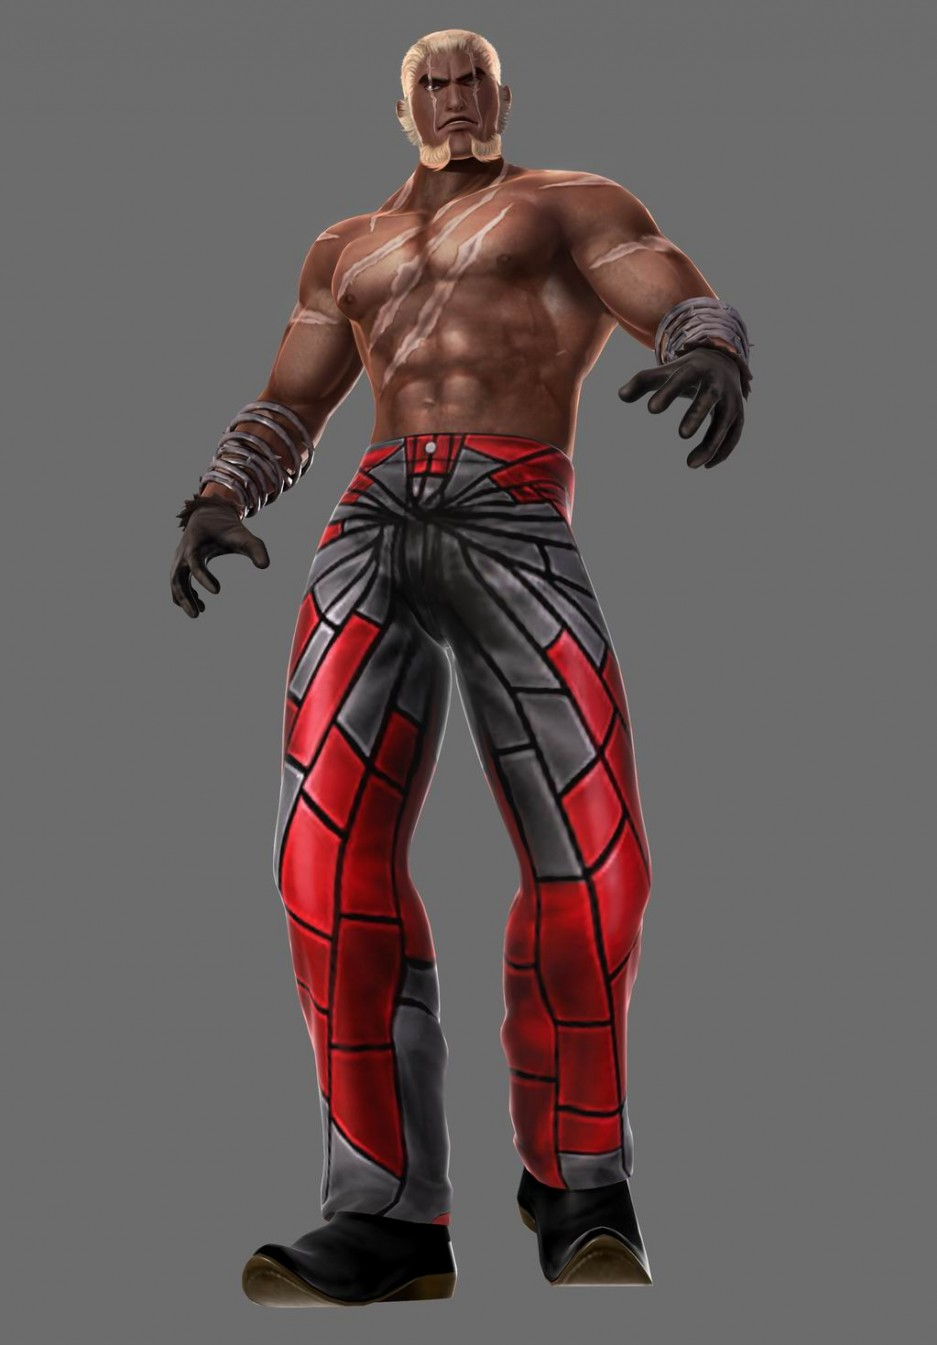 Duke the king of fighters - King of fighters characters pictures ...